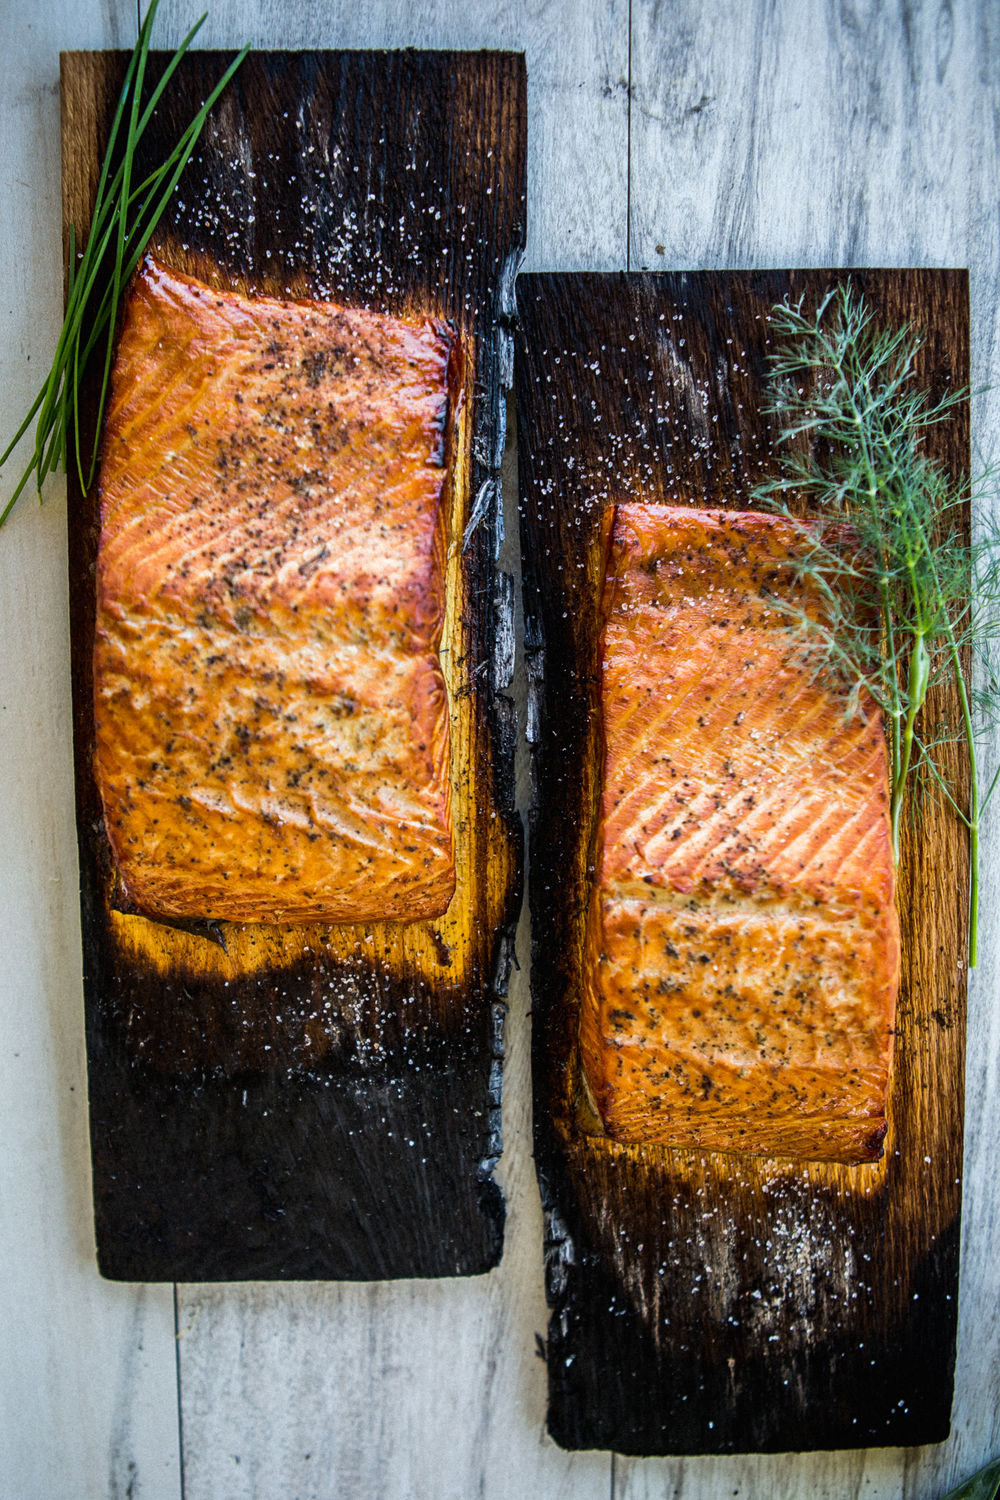 Experivida Food cedar Planked salmon grilled avocado organic vegetables cooking space girl-1756.jpg